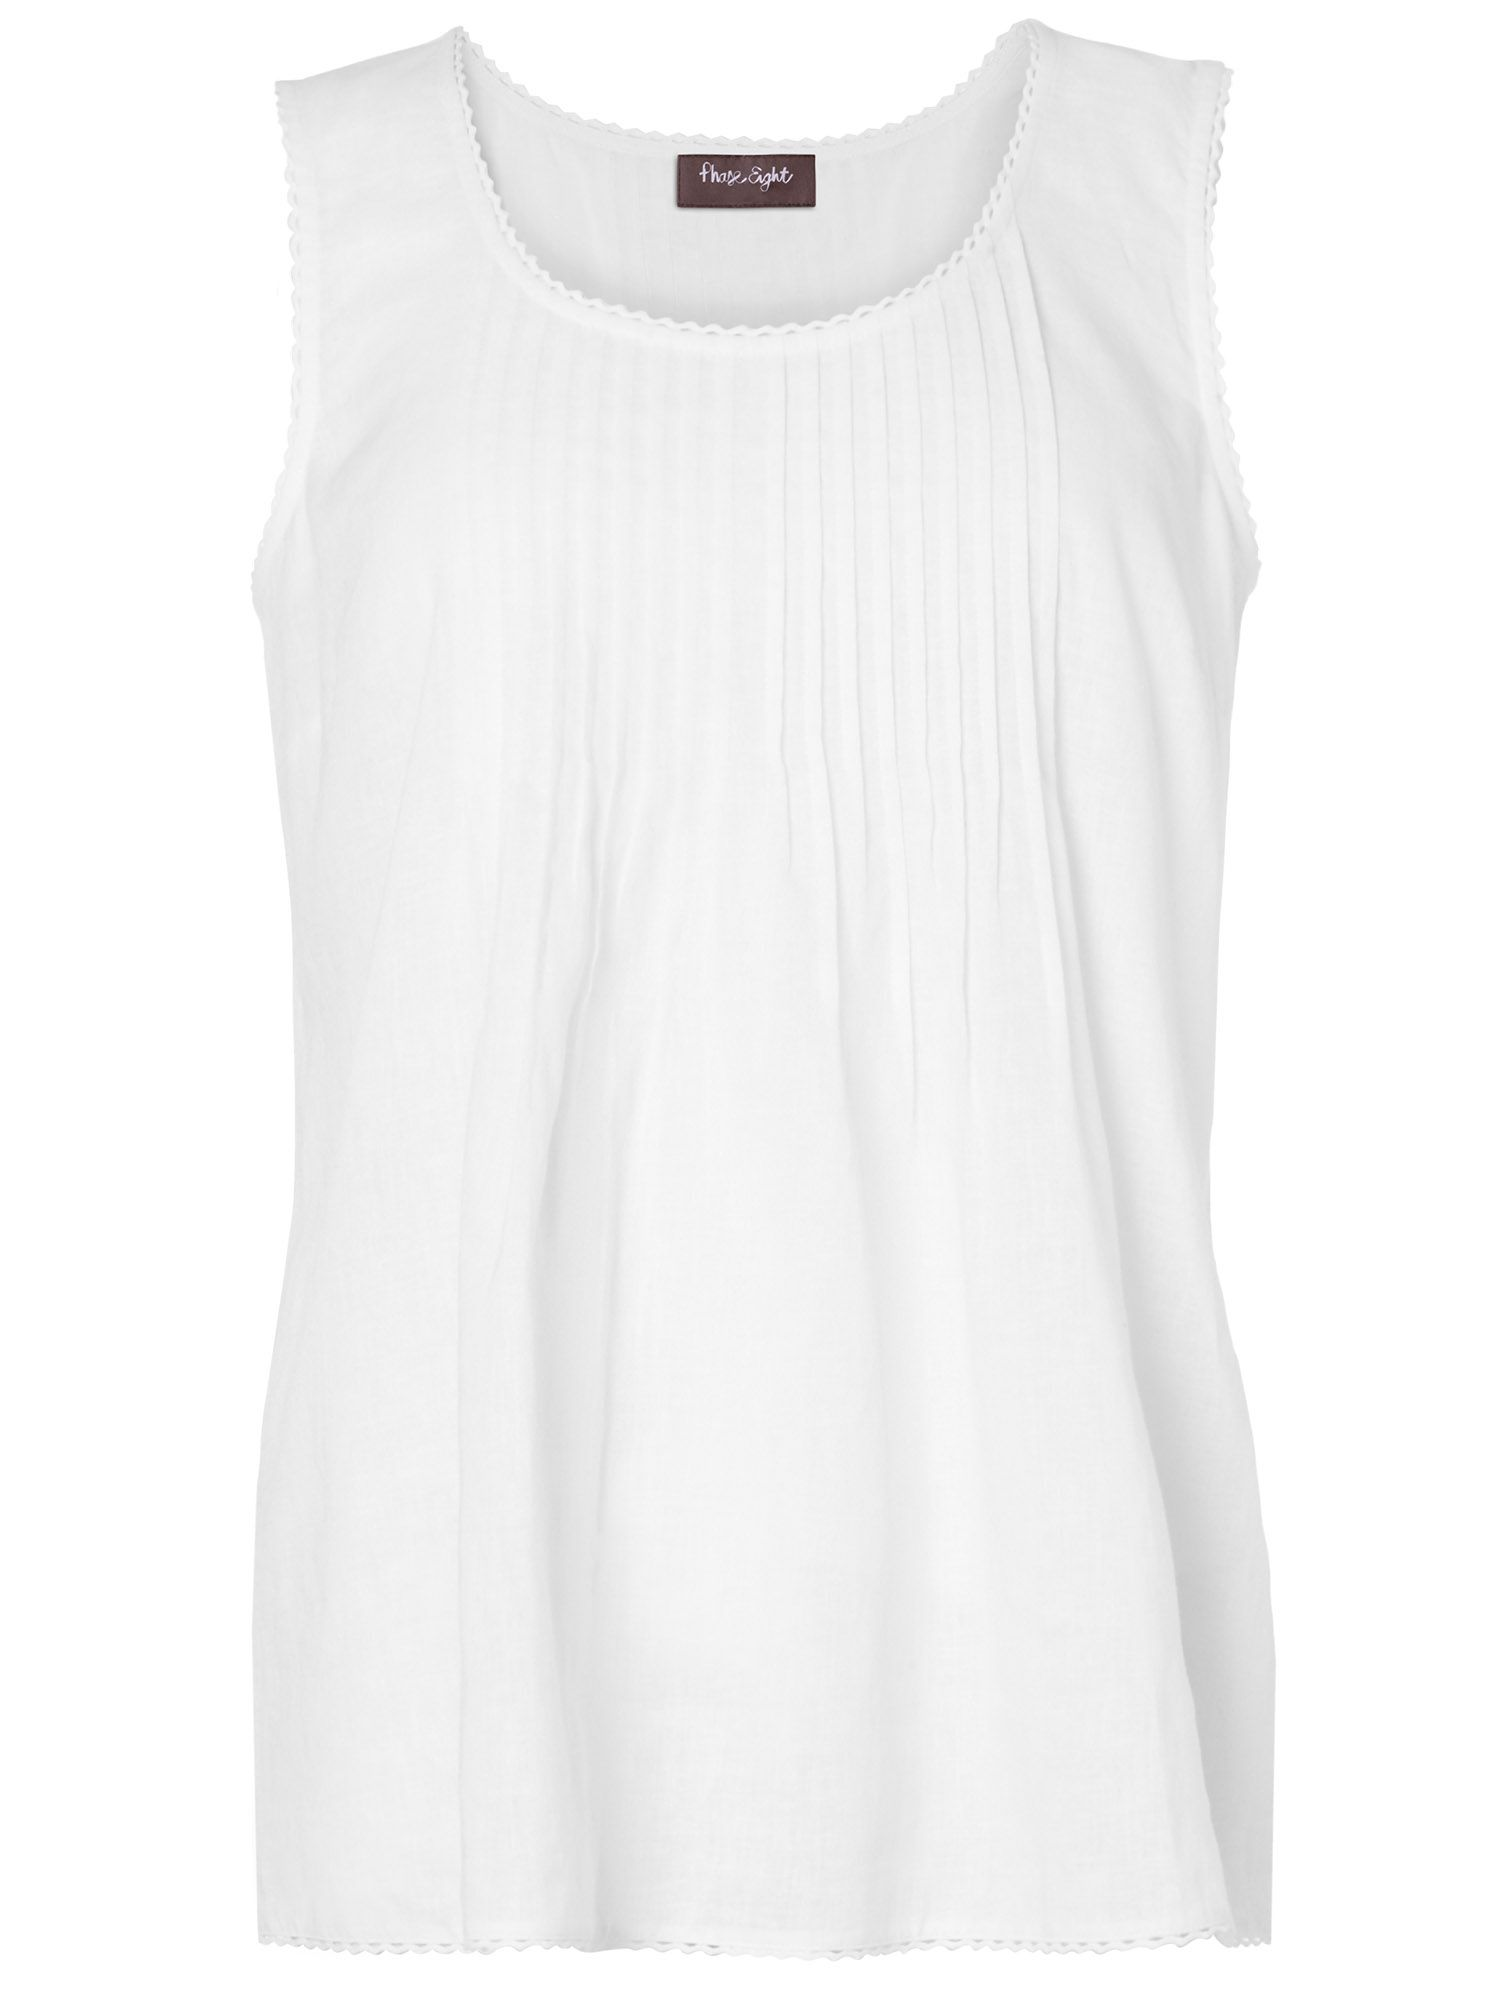 Mindy pintuck sleeveless linen top